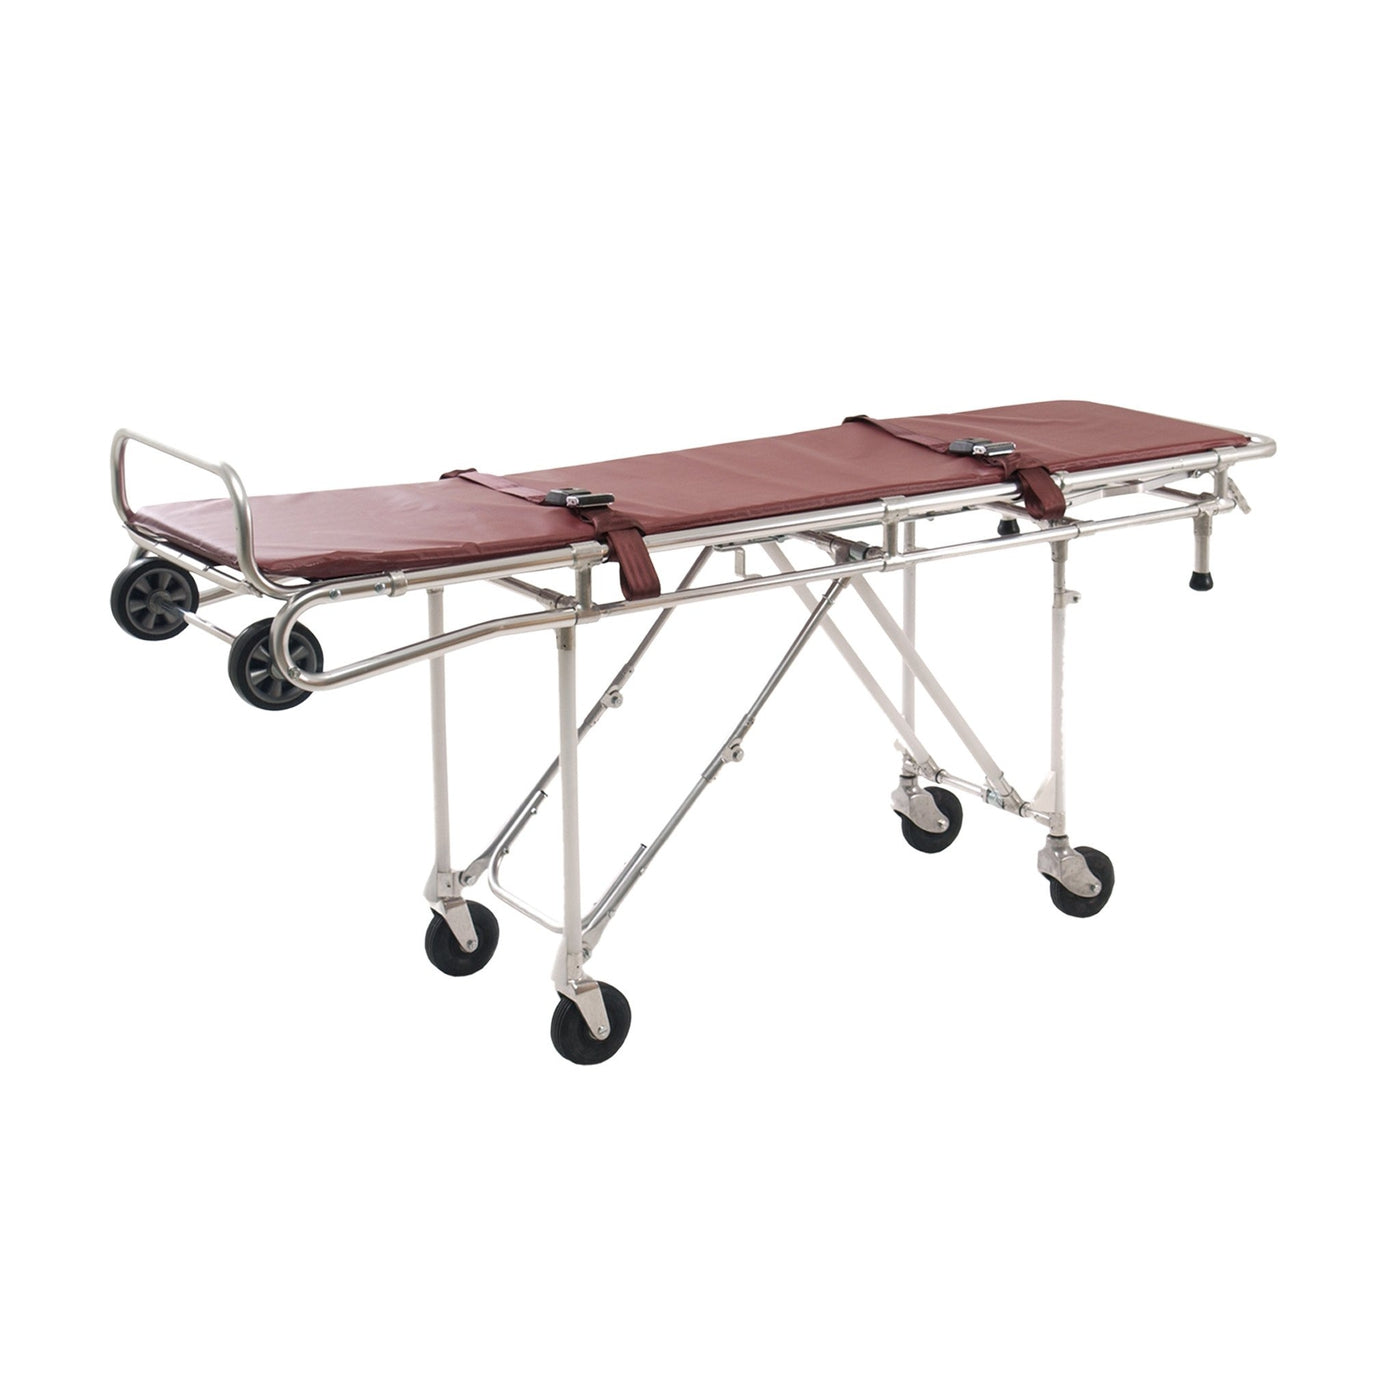 Roll-In Mortuary Cot-Body Transporter-Mortech Manufacturing Company Inc. Quality Stainless Steel Autopsy, Morgue, Funeral Home, Necropsy, Veterinary / Anatomy, Dissection Equipment and Accessories